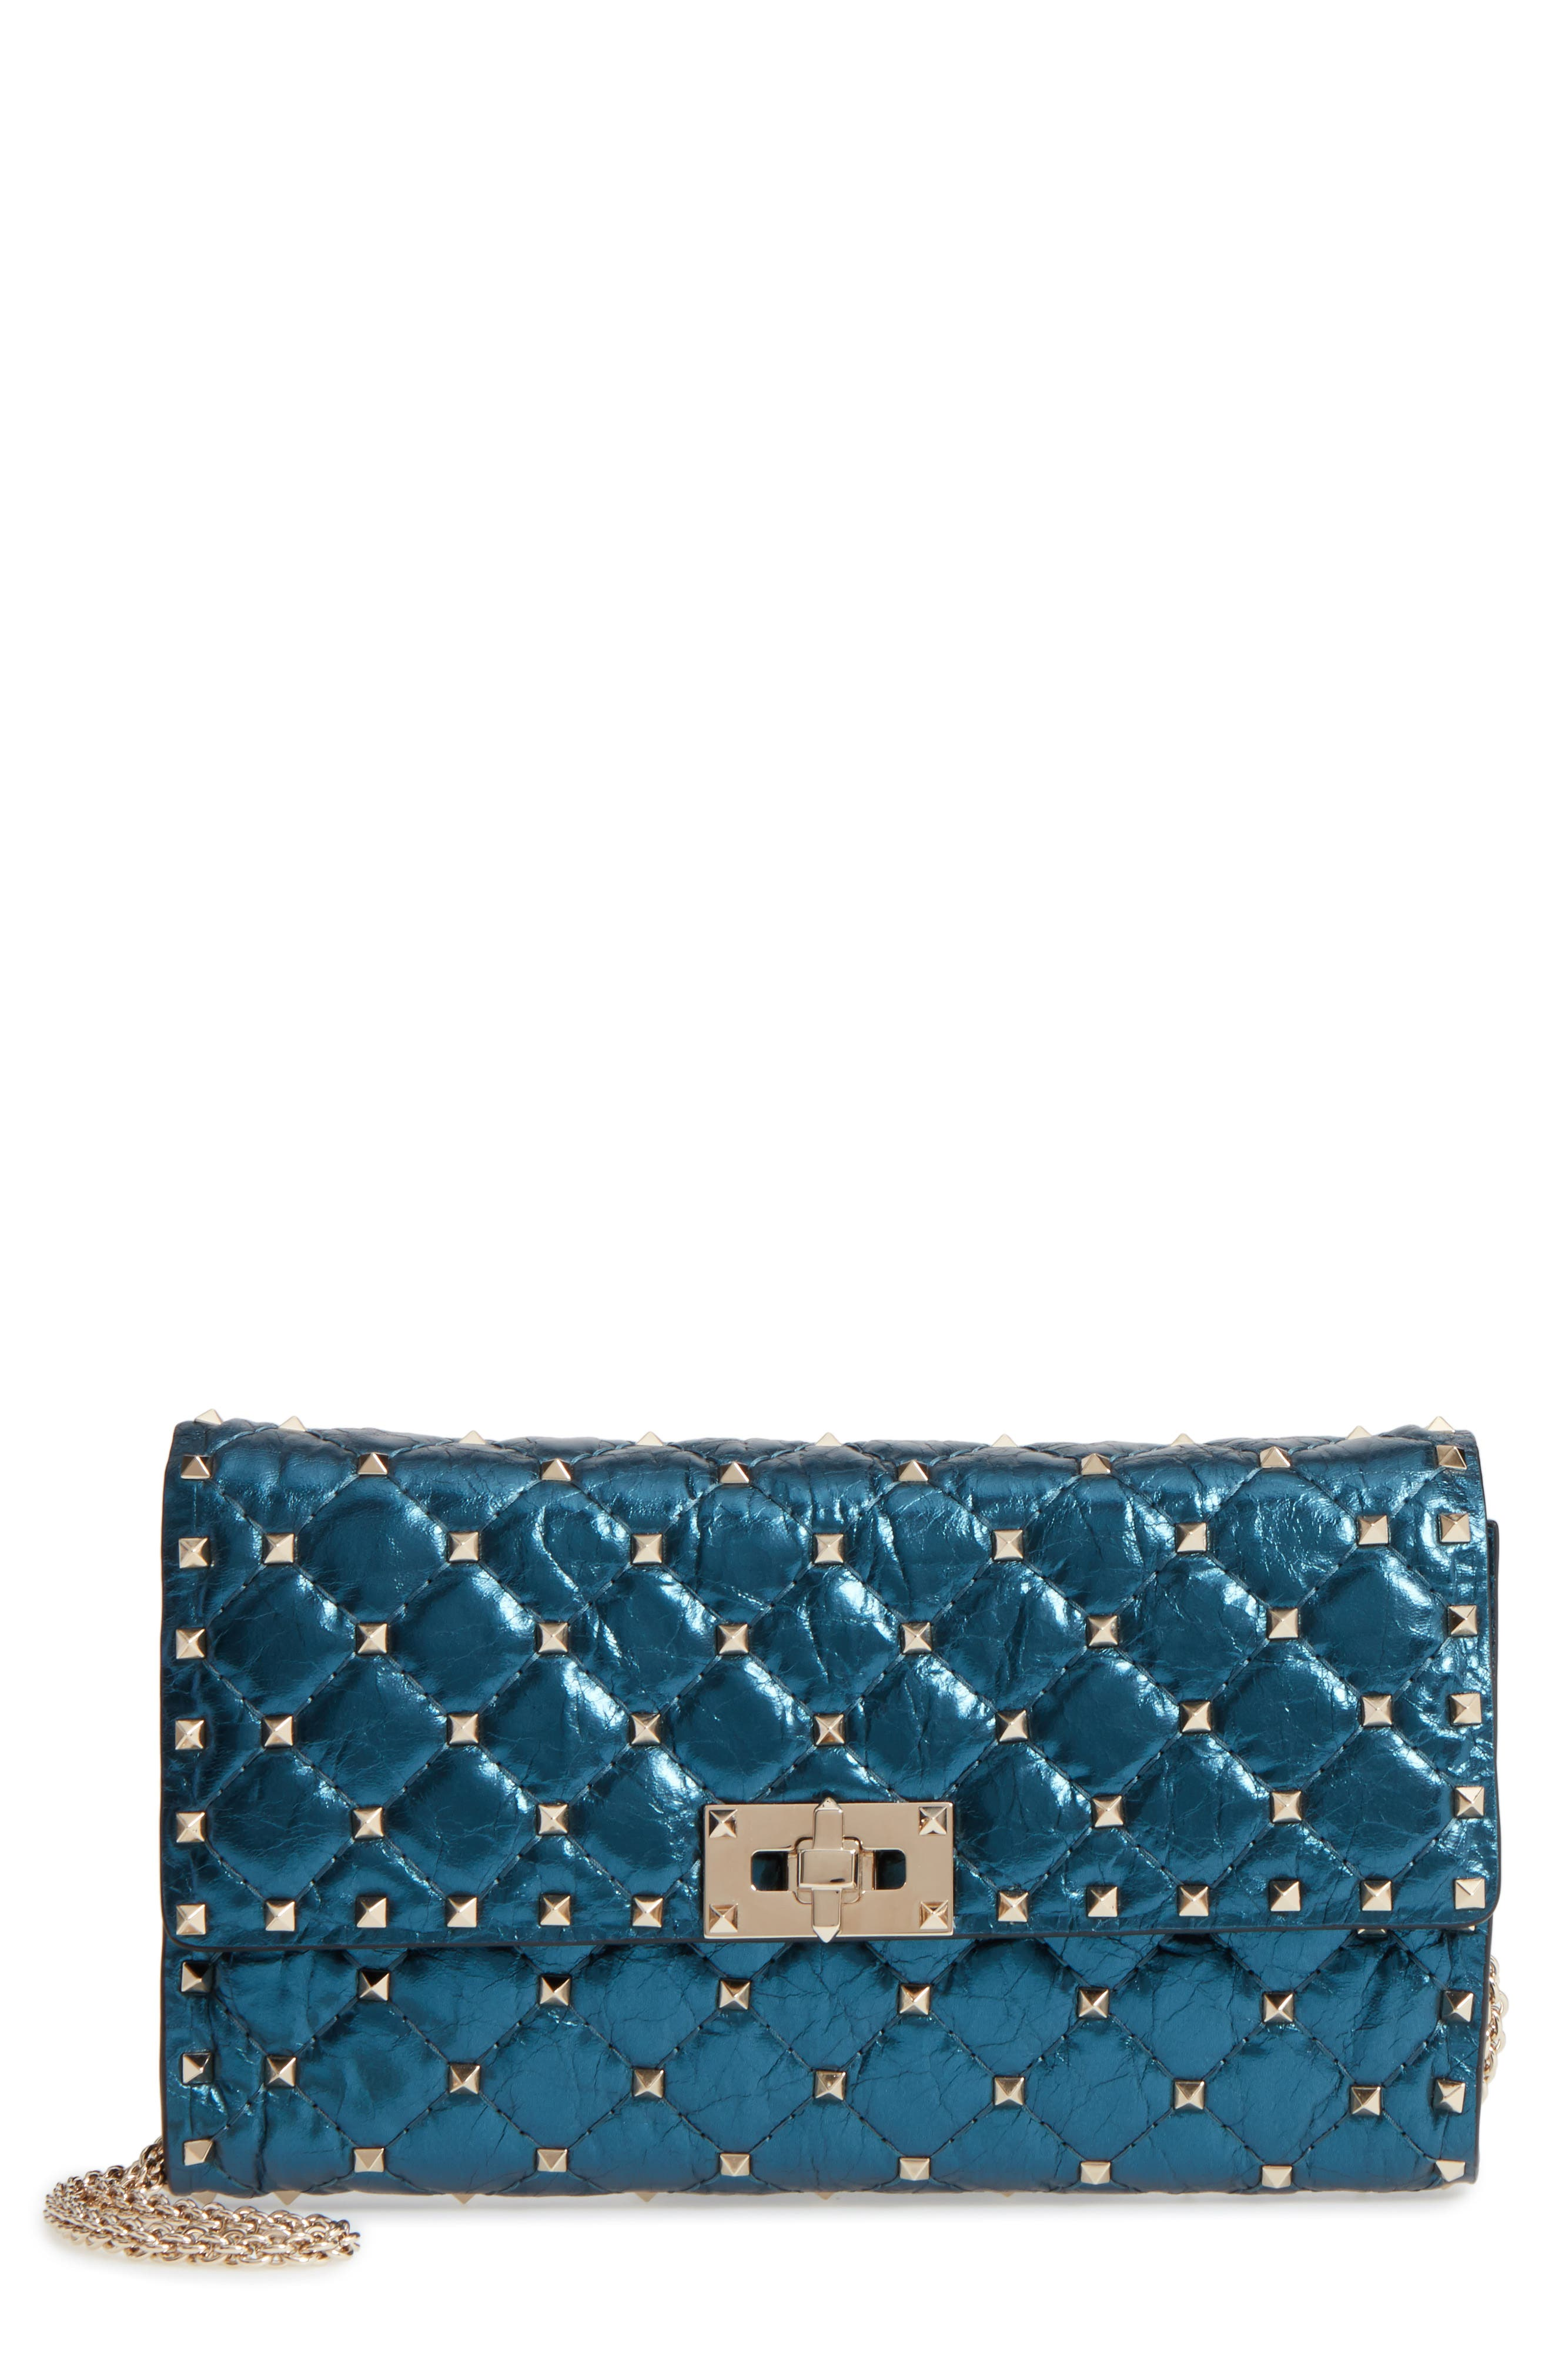 Alternate Image 1 Selected - VALENTINO GARAVANI Small Rockstud Spike Laminato Crossbody Bag